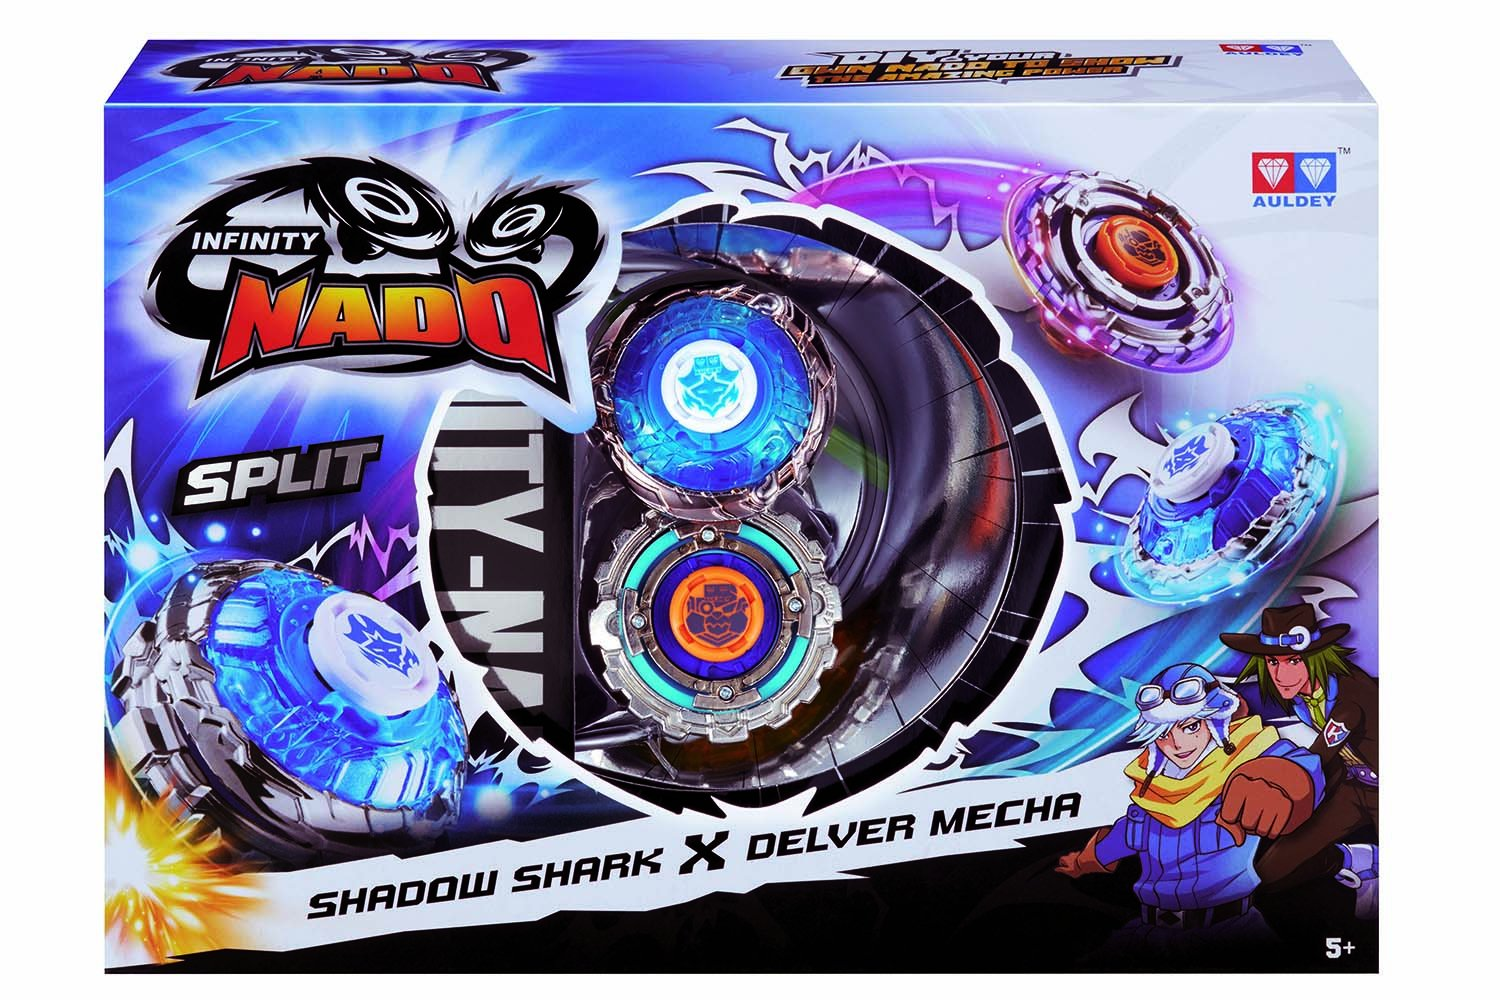 Infinity Nado Split Series Duel Pack Battling Metal Top Game Shadow Shark Delver Mecha